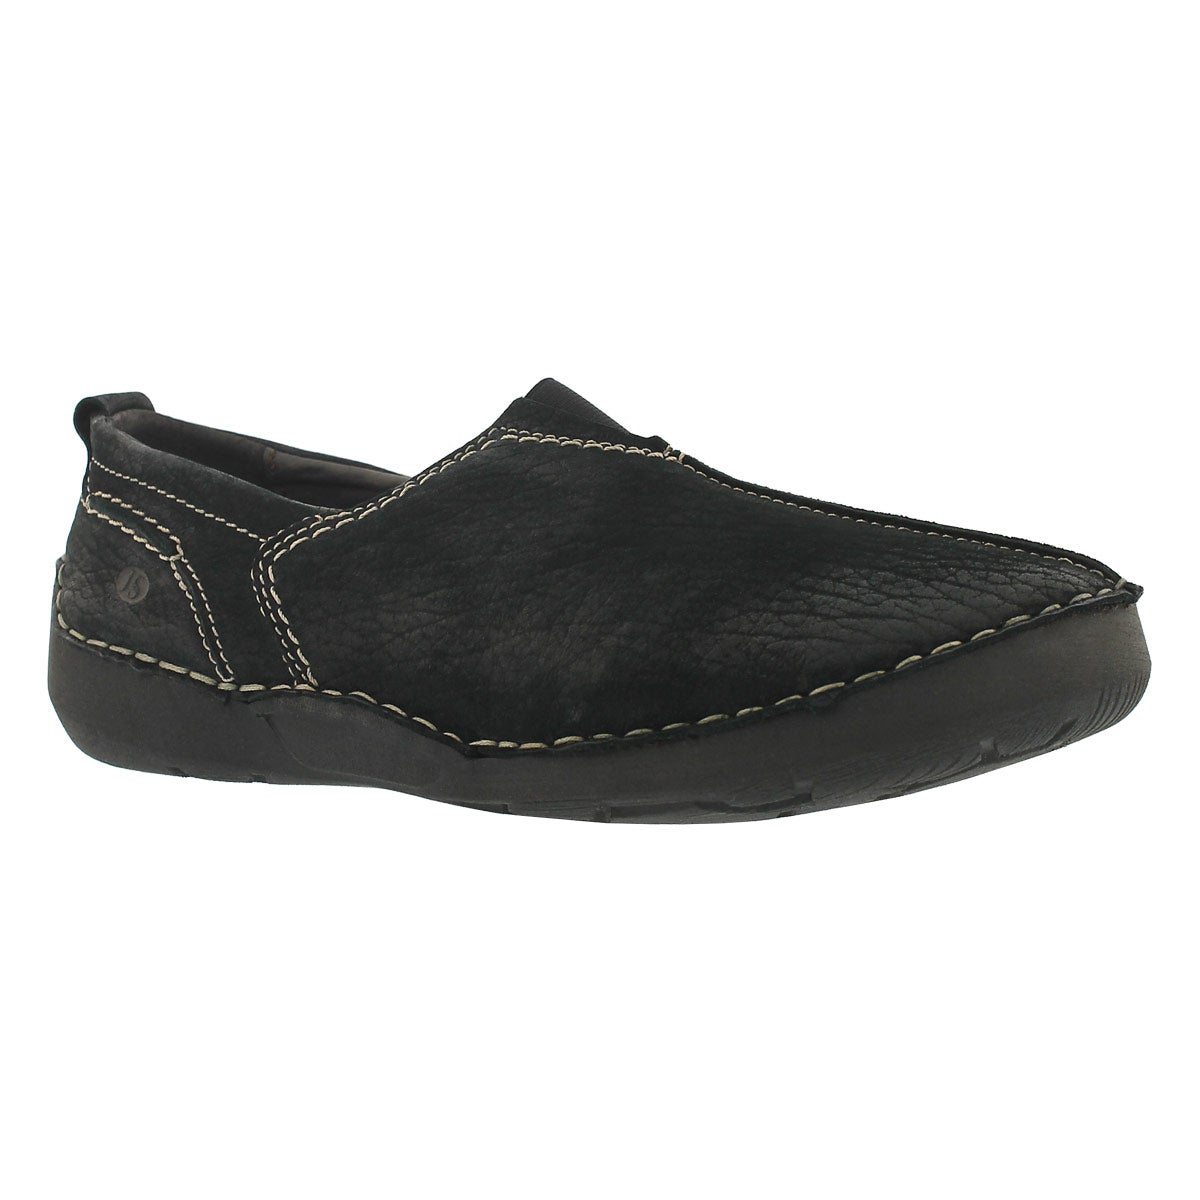 Lds Fergey 12 black slip on casual shoe